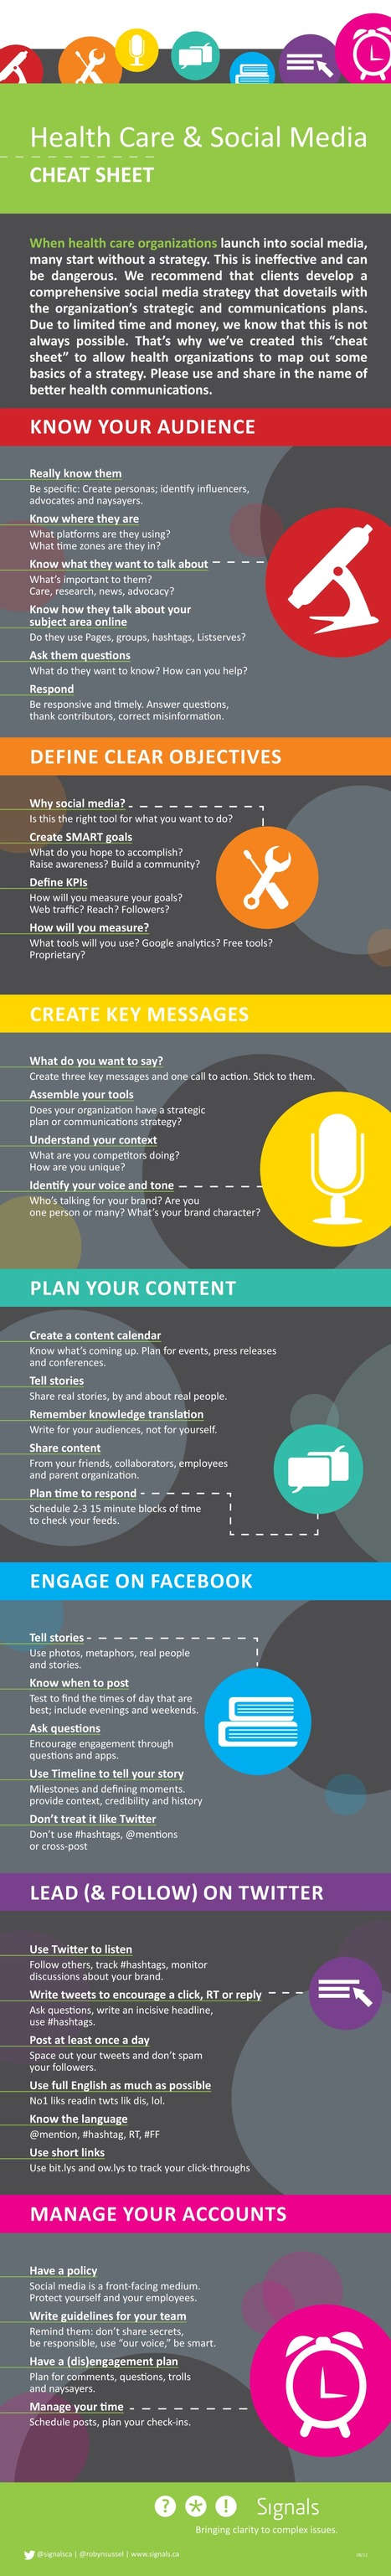 The 7-Step Social Media Cheatsheet for Organizations | Social Media and Web Infographics hh | Scoop.it